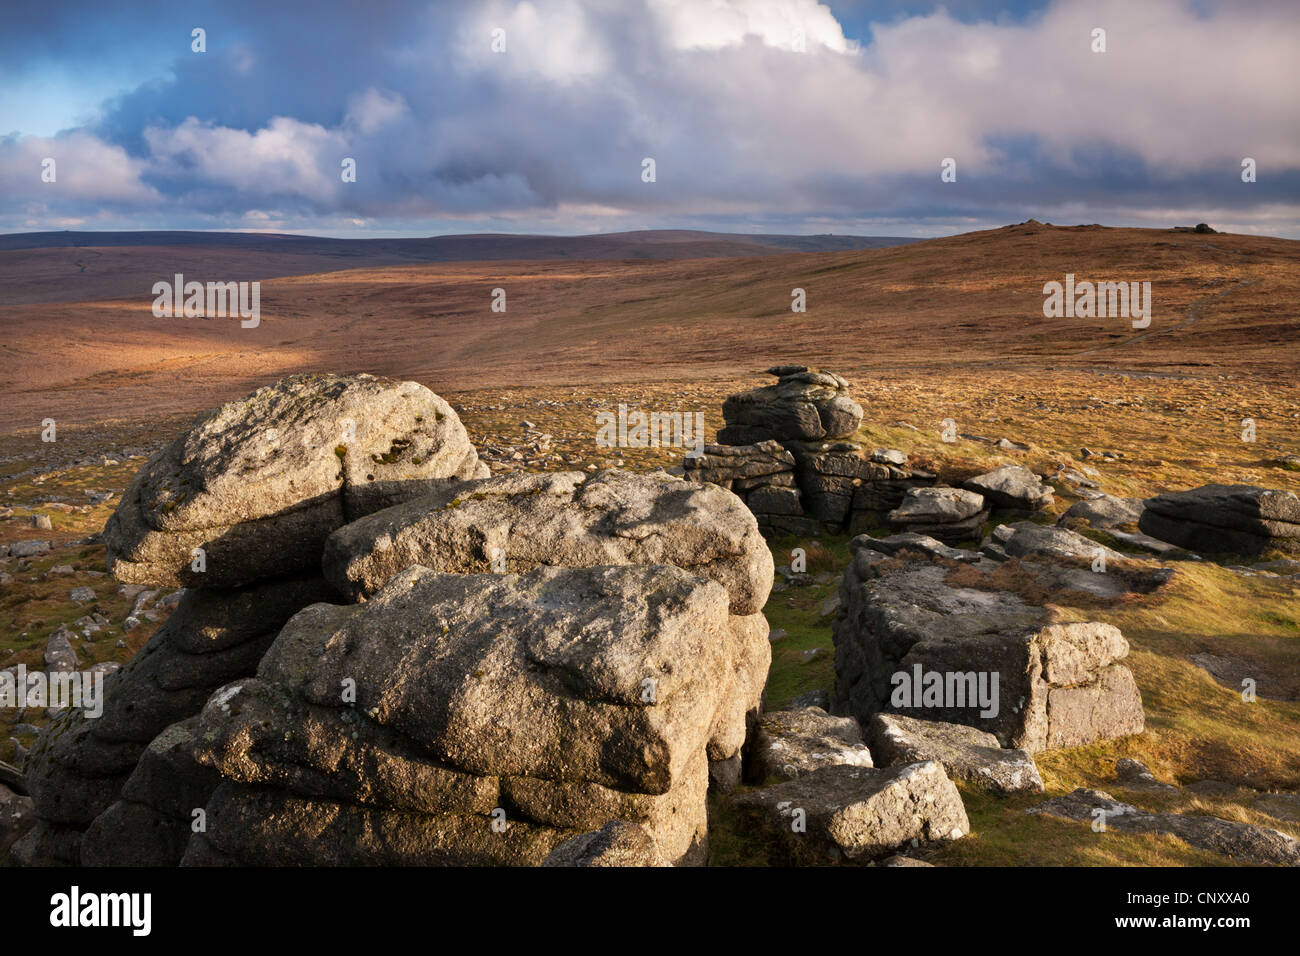 High Willhays, the highest summit in Southern Britain, viewed from Yes Tor, Dartmoor, Devon, England. Spring (April) - Stock Image